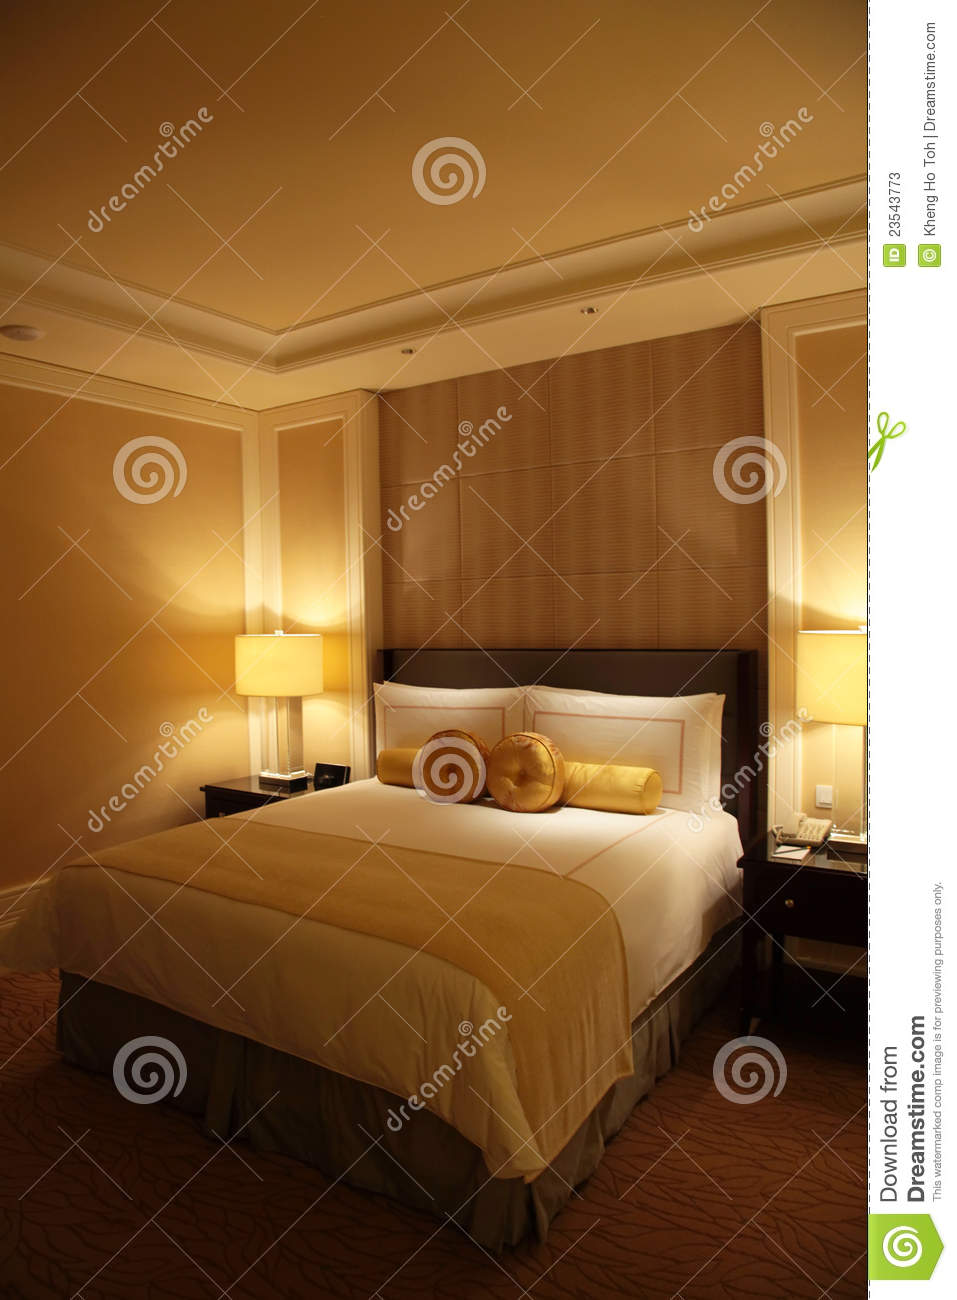 Hotel Bedroom: Luxury Hotel Room Stock Photos